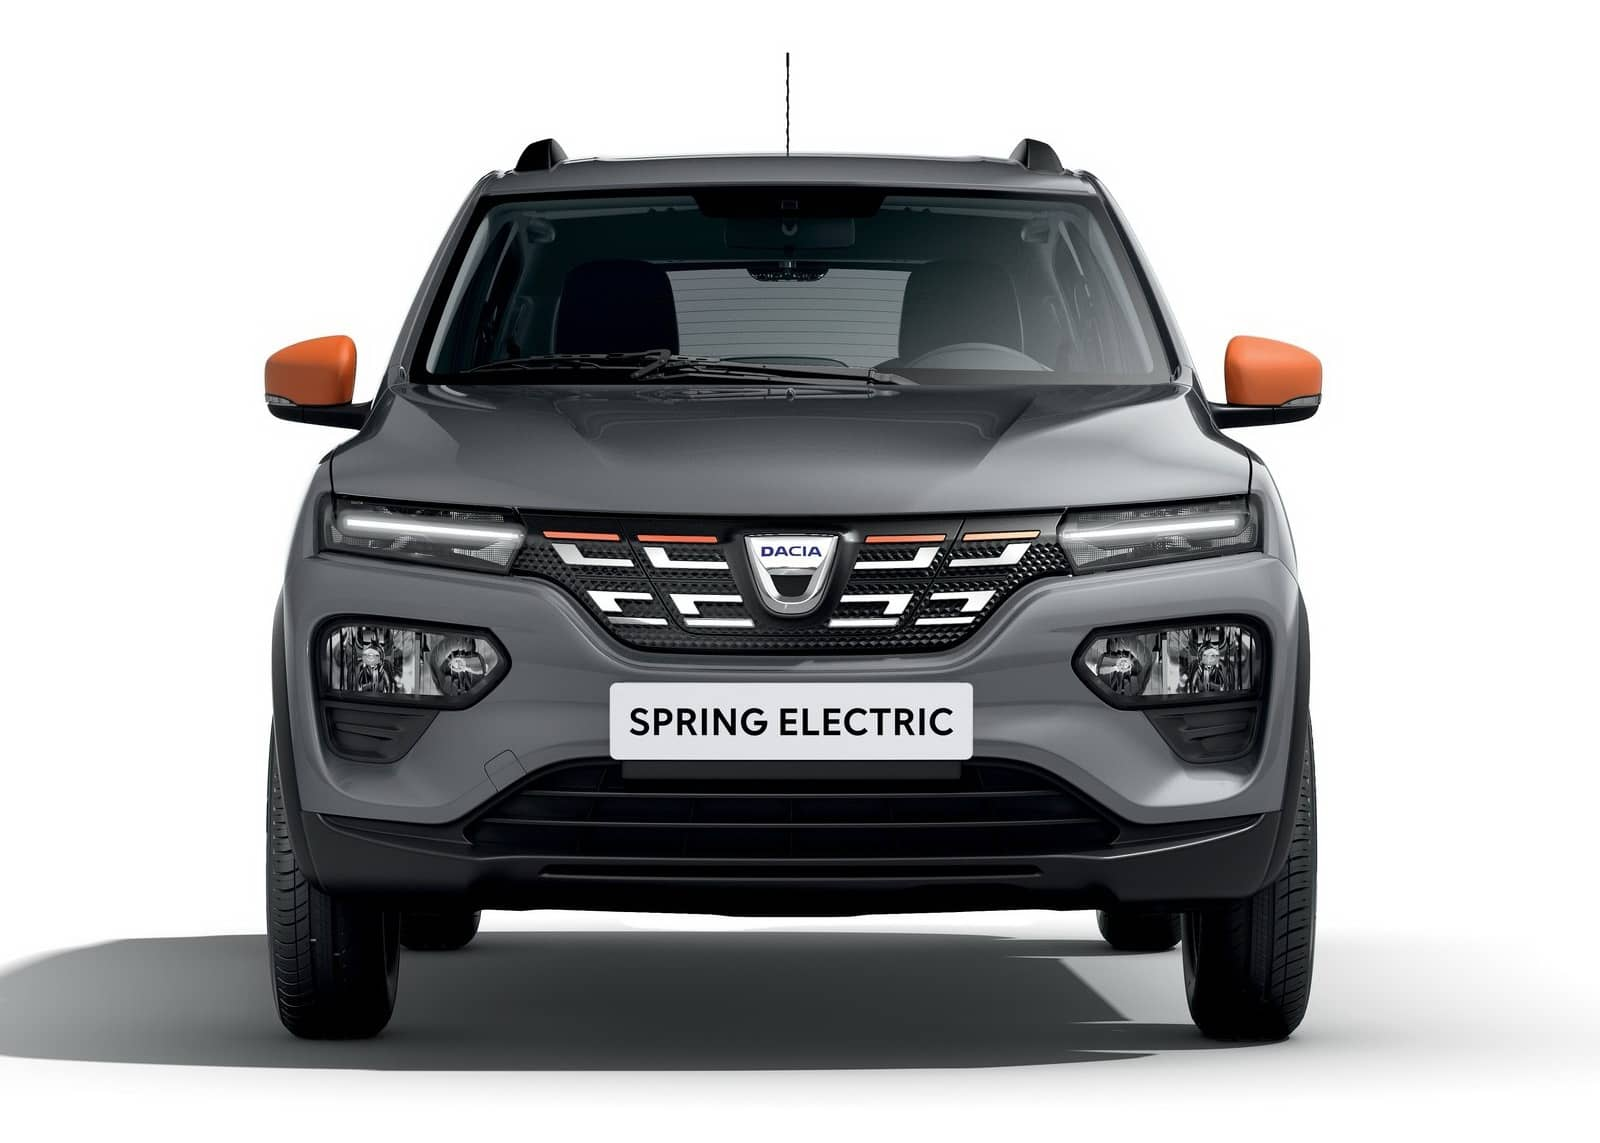 Dacia-Spring_Electric-2022-1600-0f